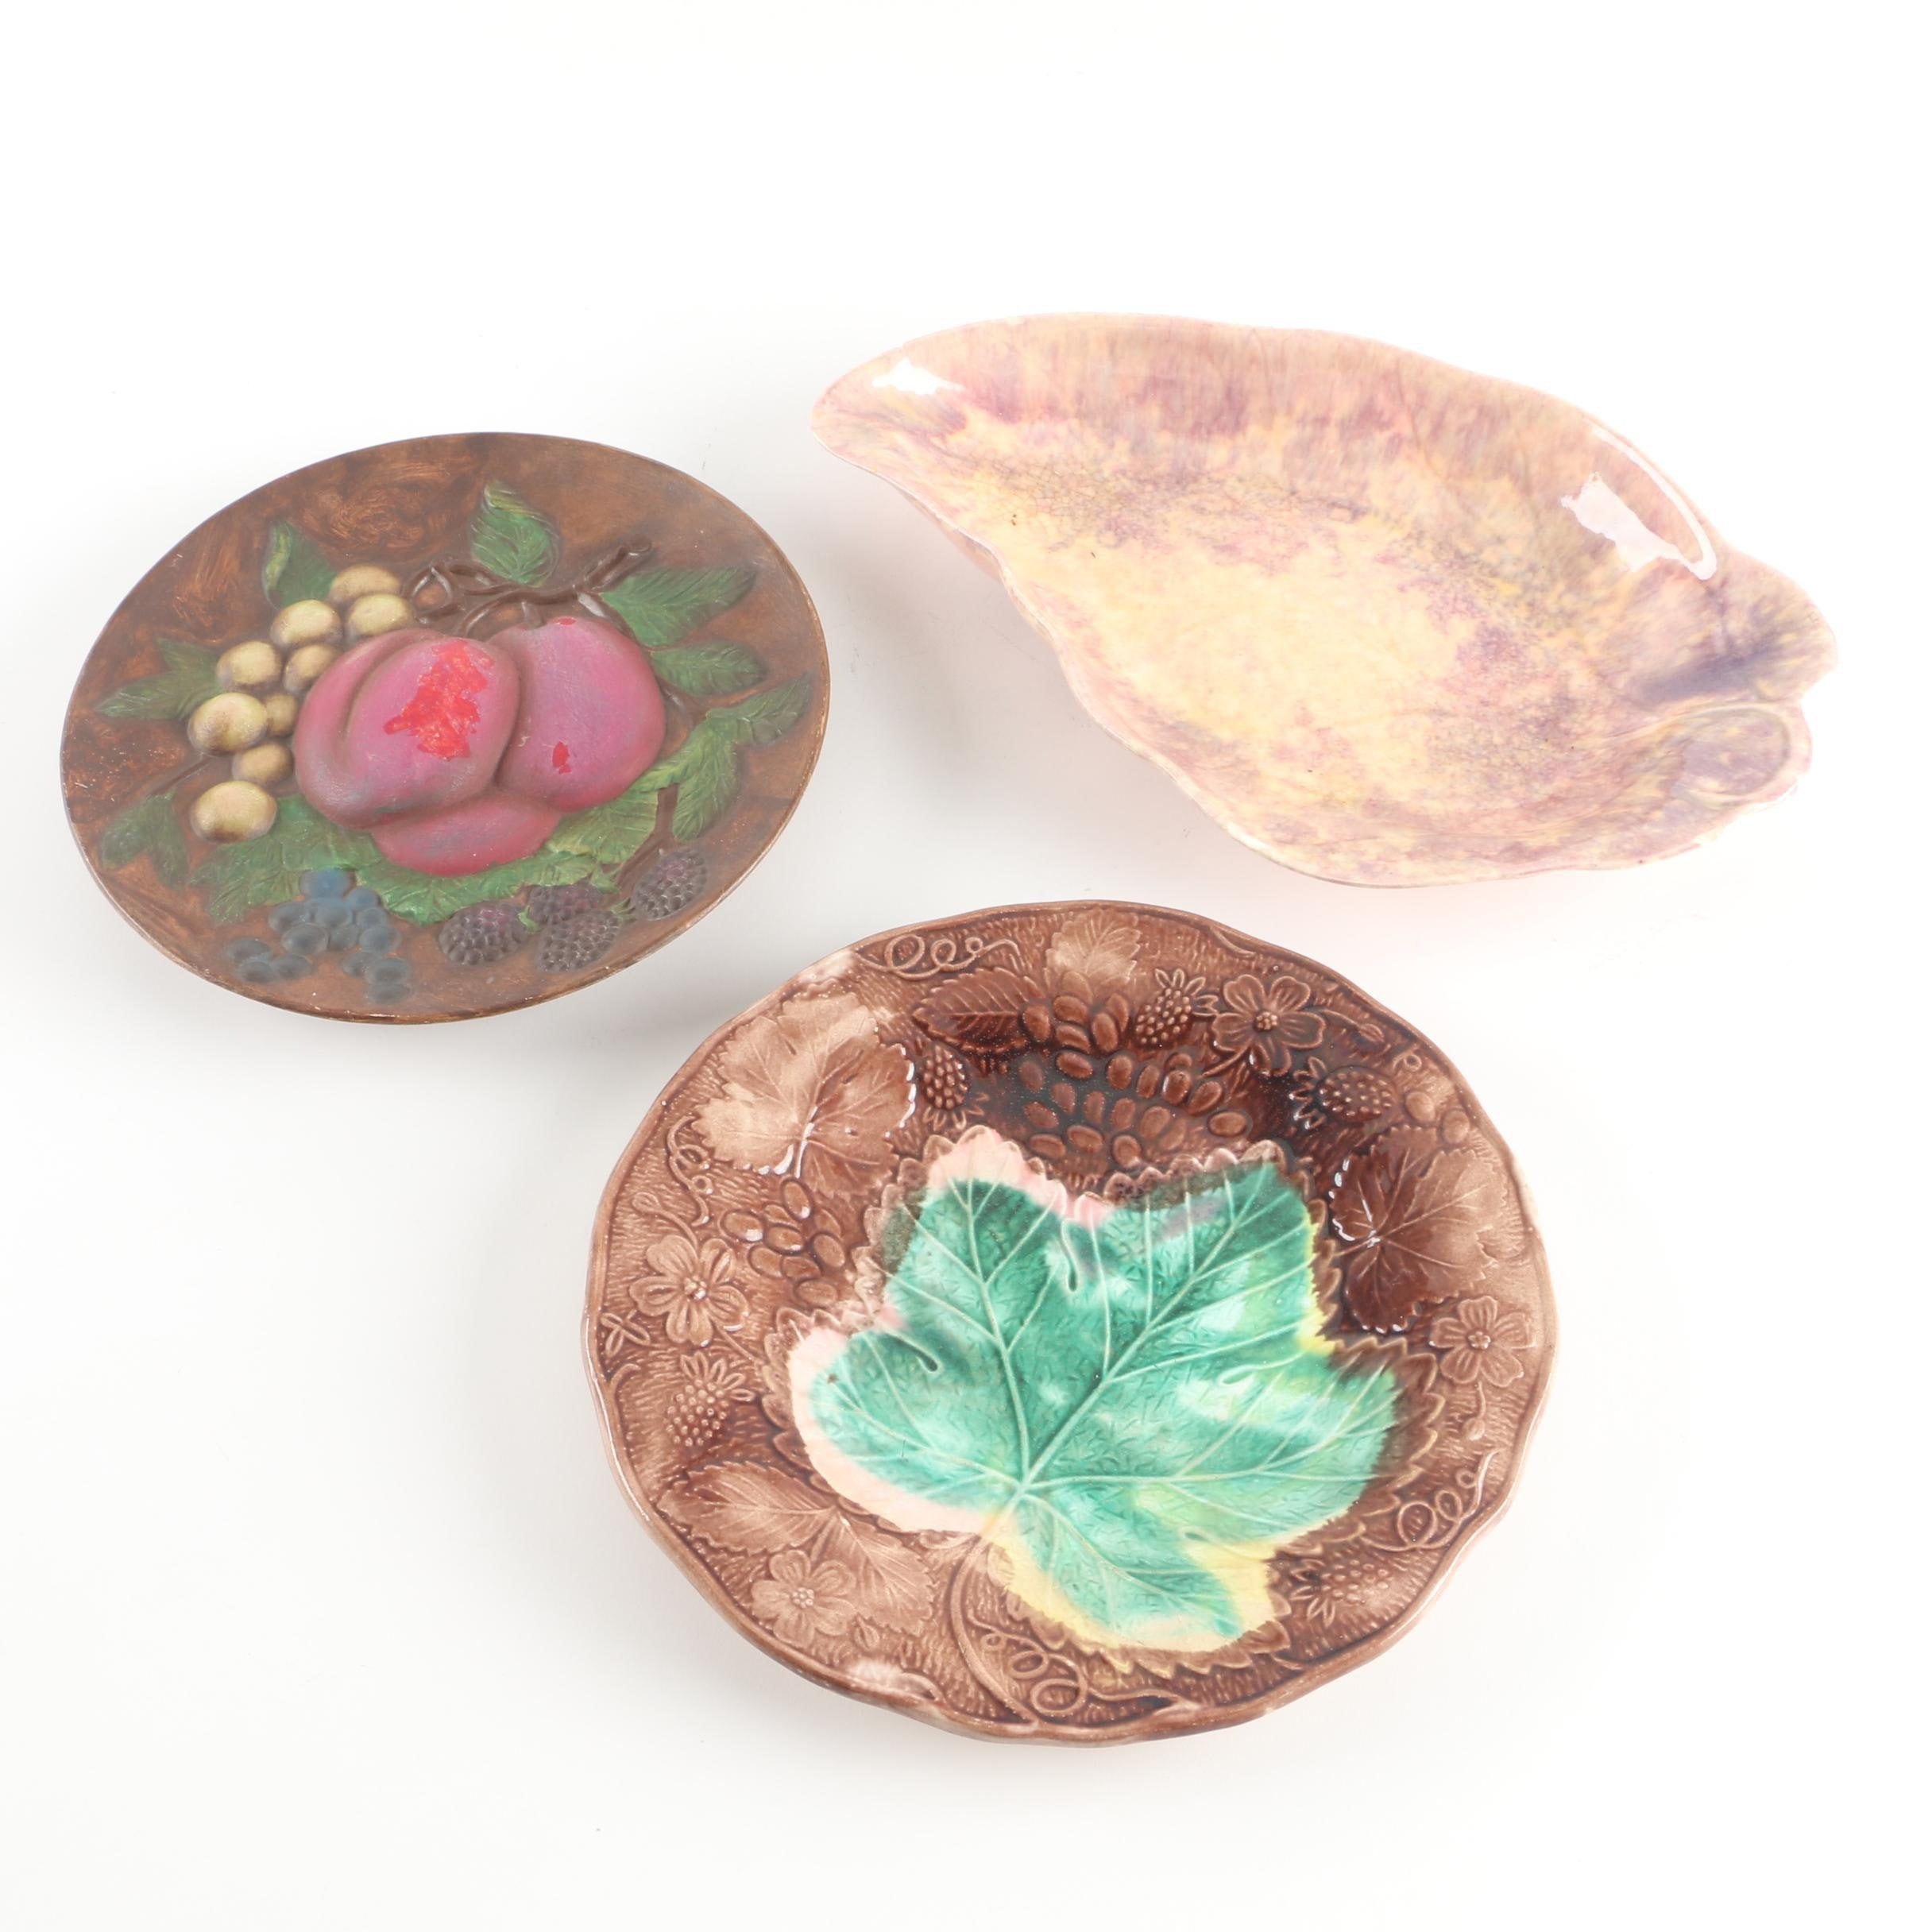 Art Pottery Serveware Featuring Walker Ceramic Leaf Dish and Majolica Plate